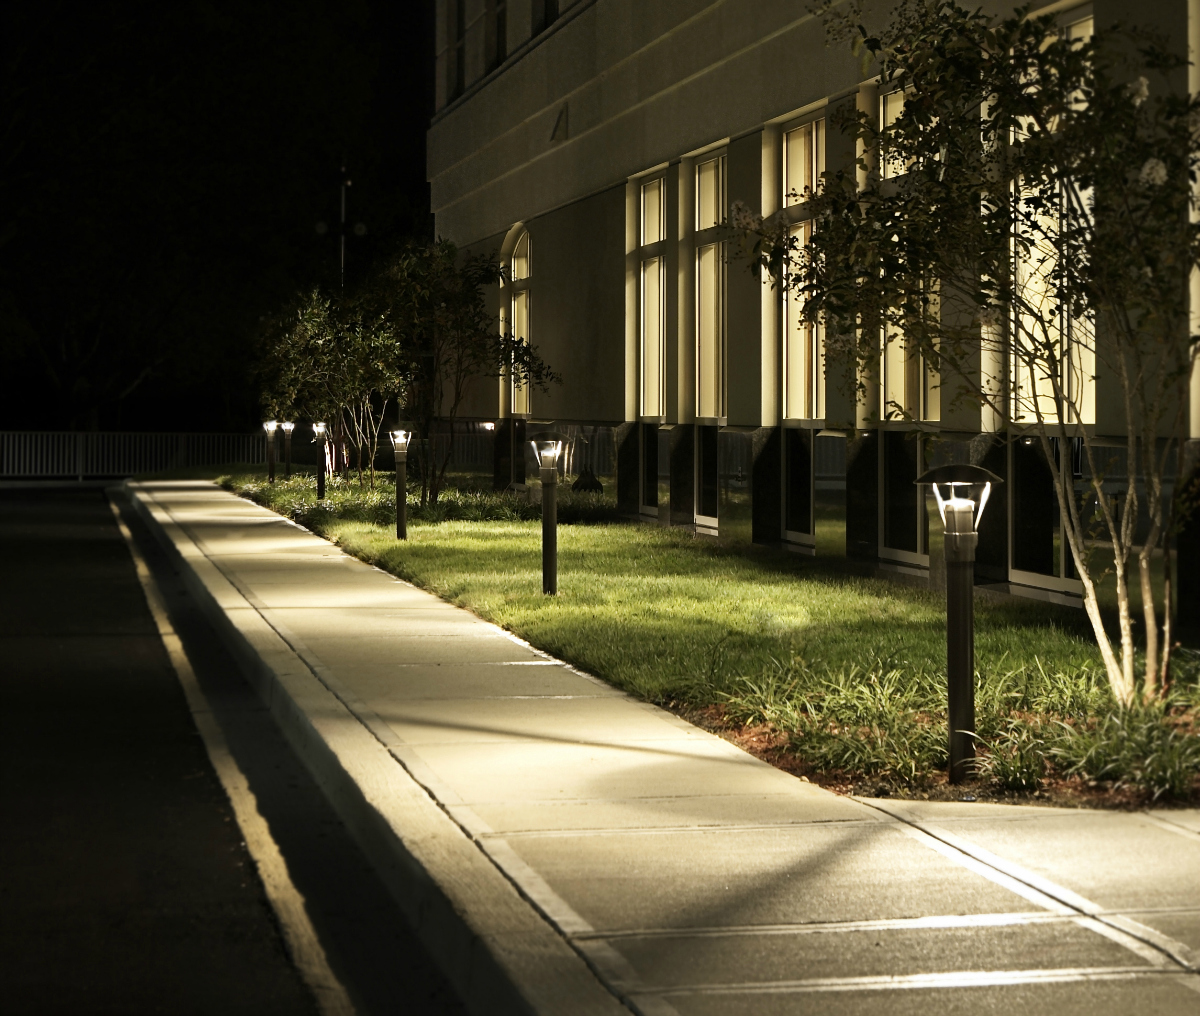 Commercial path lighting in St. Louis makes the walk to your office pleasant. We used bollard lights to illuminate this sidewalk and the area around the sidewalk on this commercial venue. Commercial lighting of this quality adds beauty to your commercial building and makes the property more safe and secure for employees and customers.